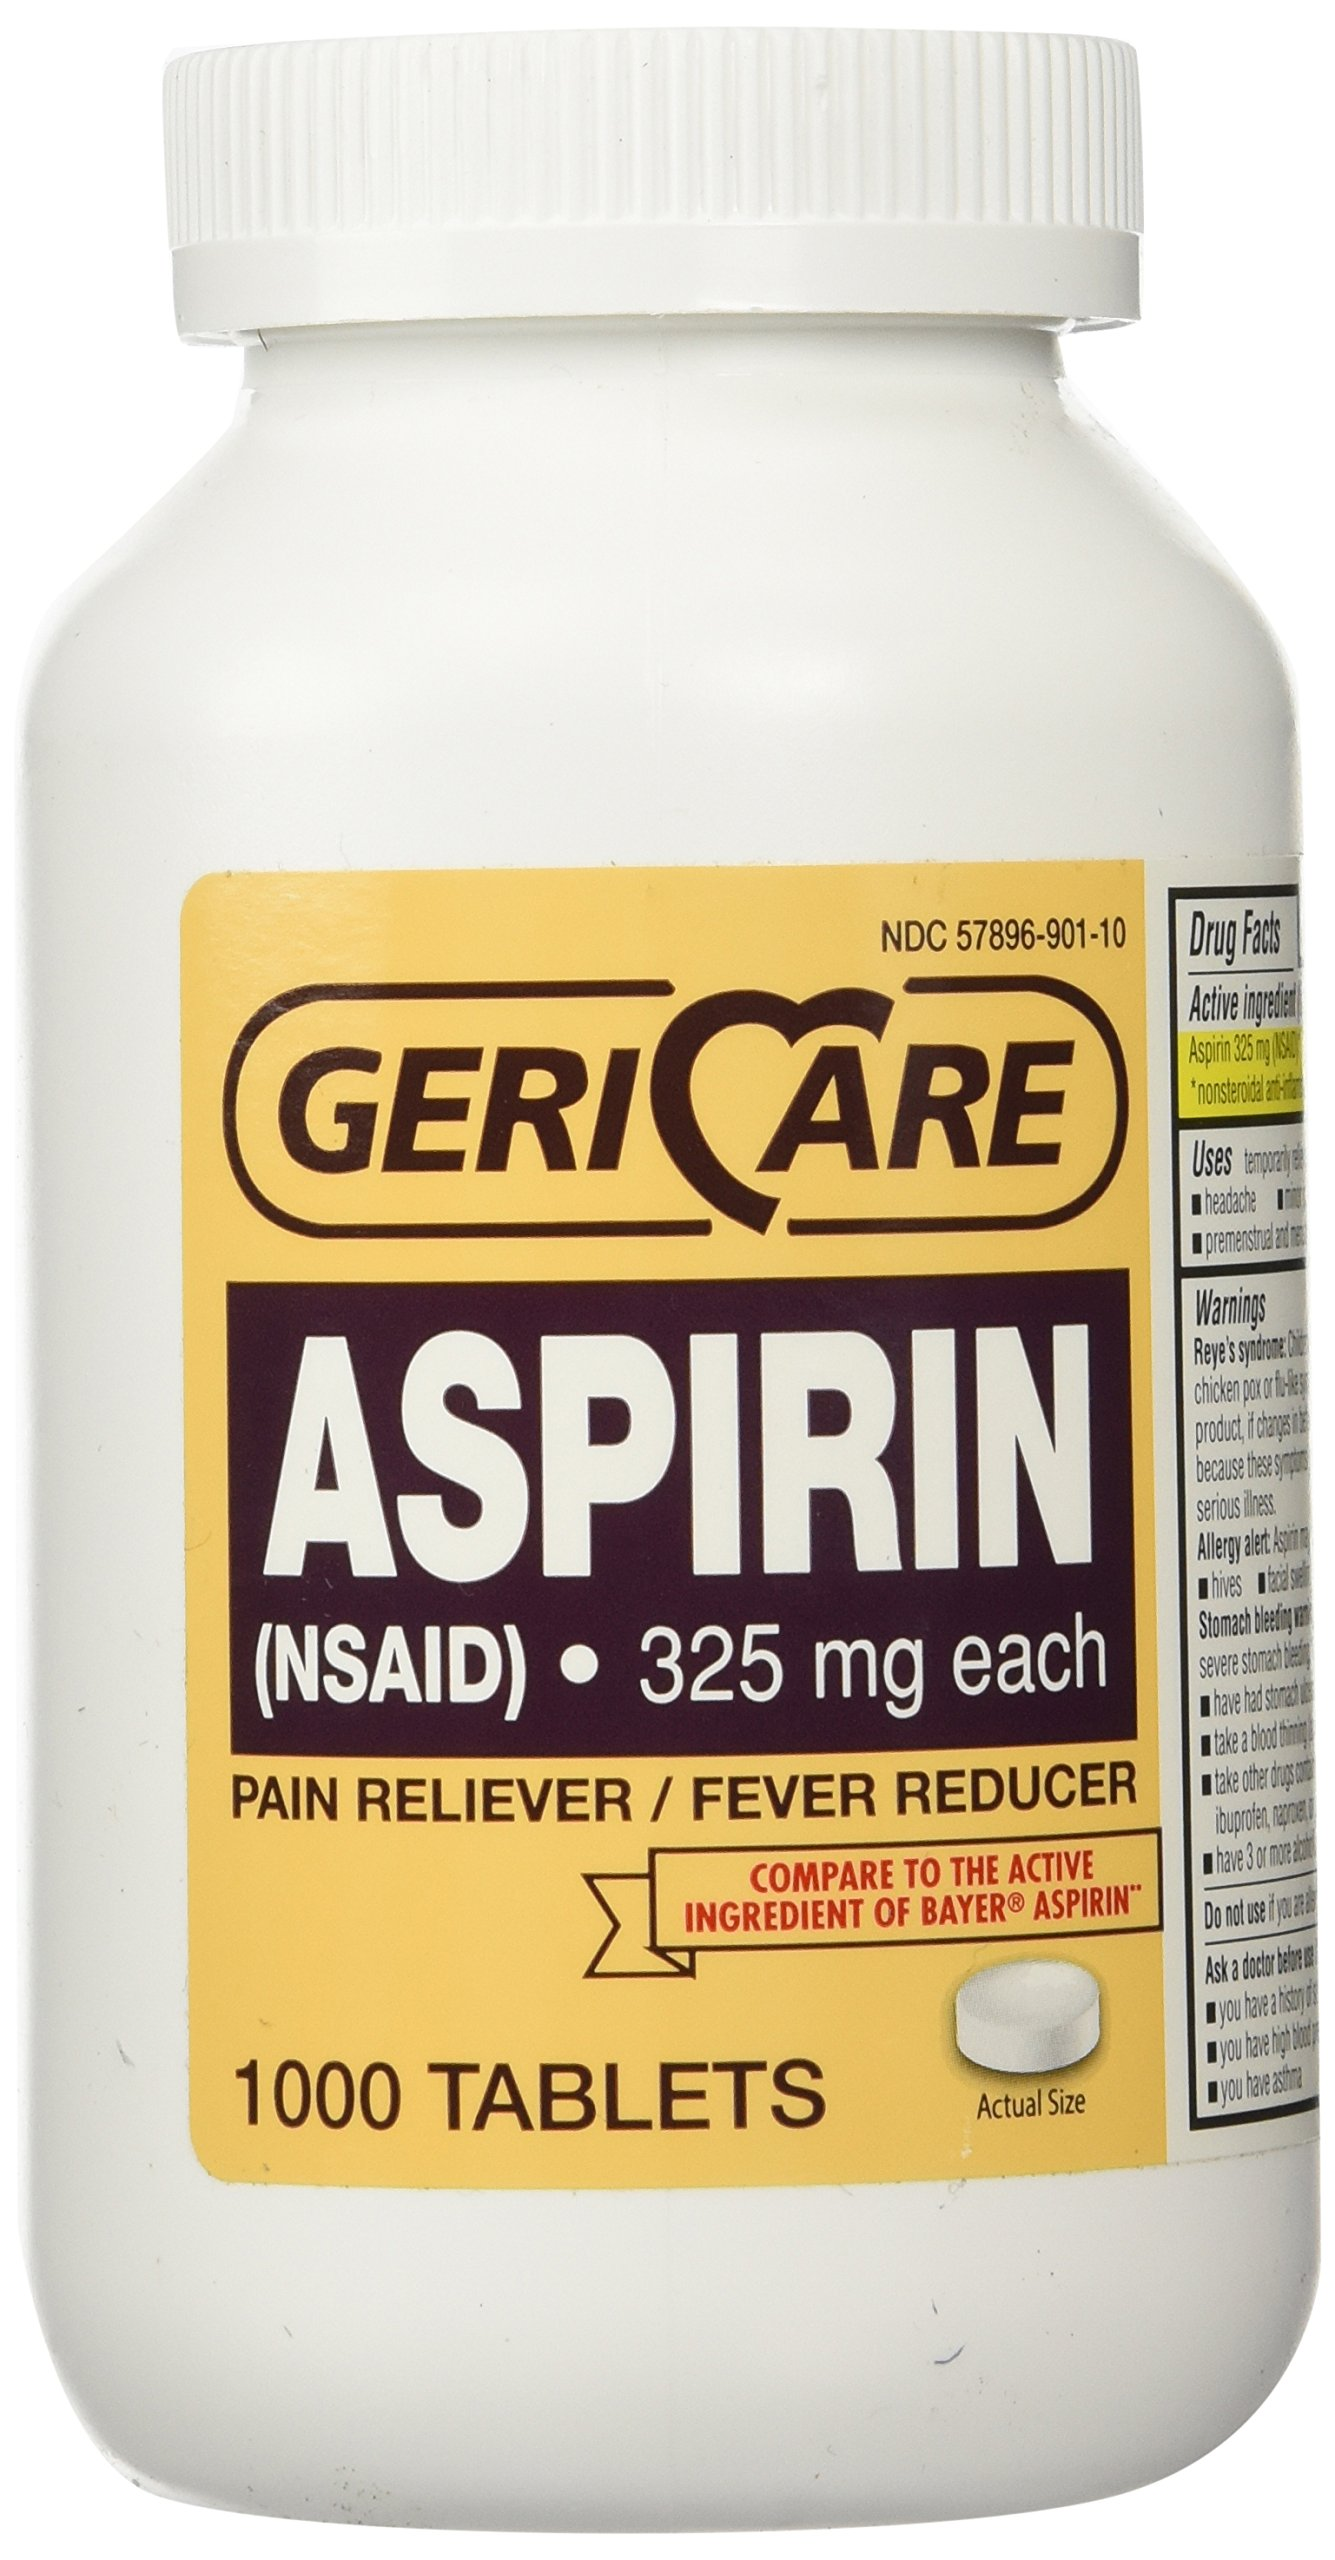 Bottled Aspirin 1000/bottle (NSAID) 325 mg. each